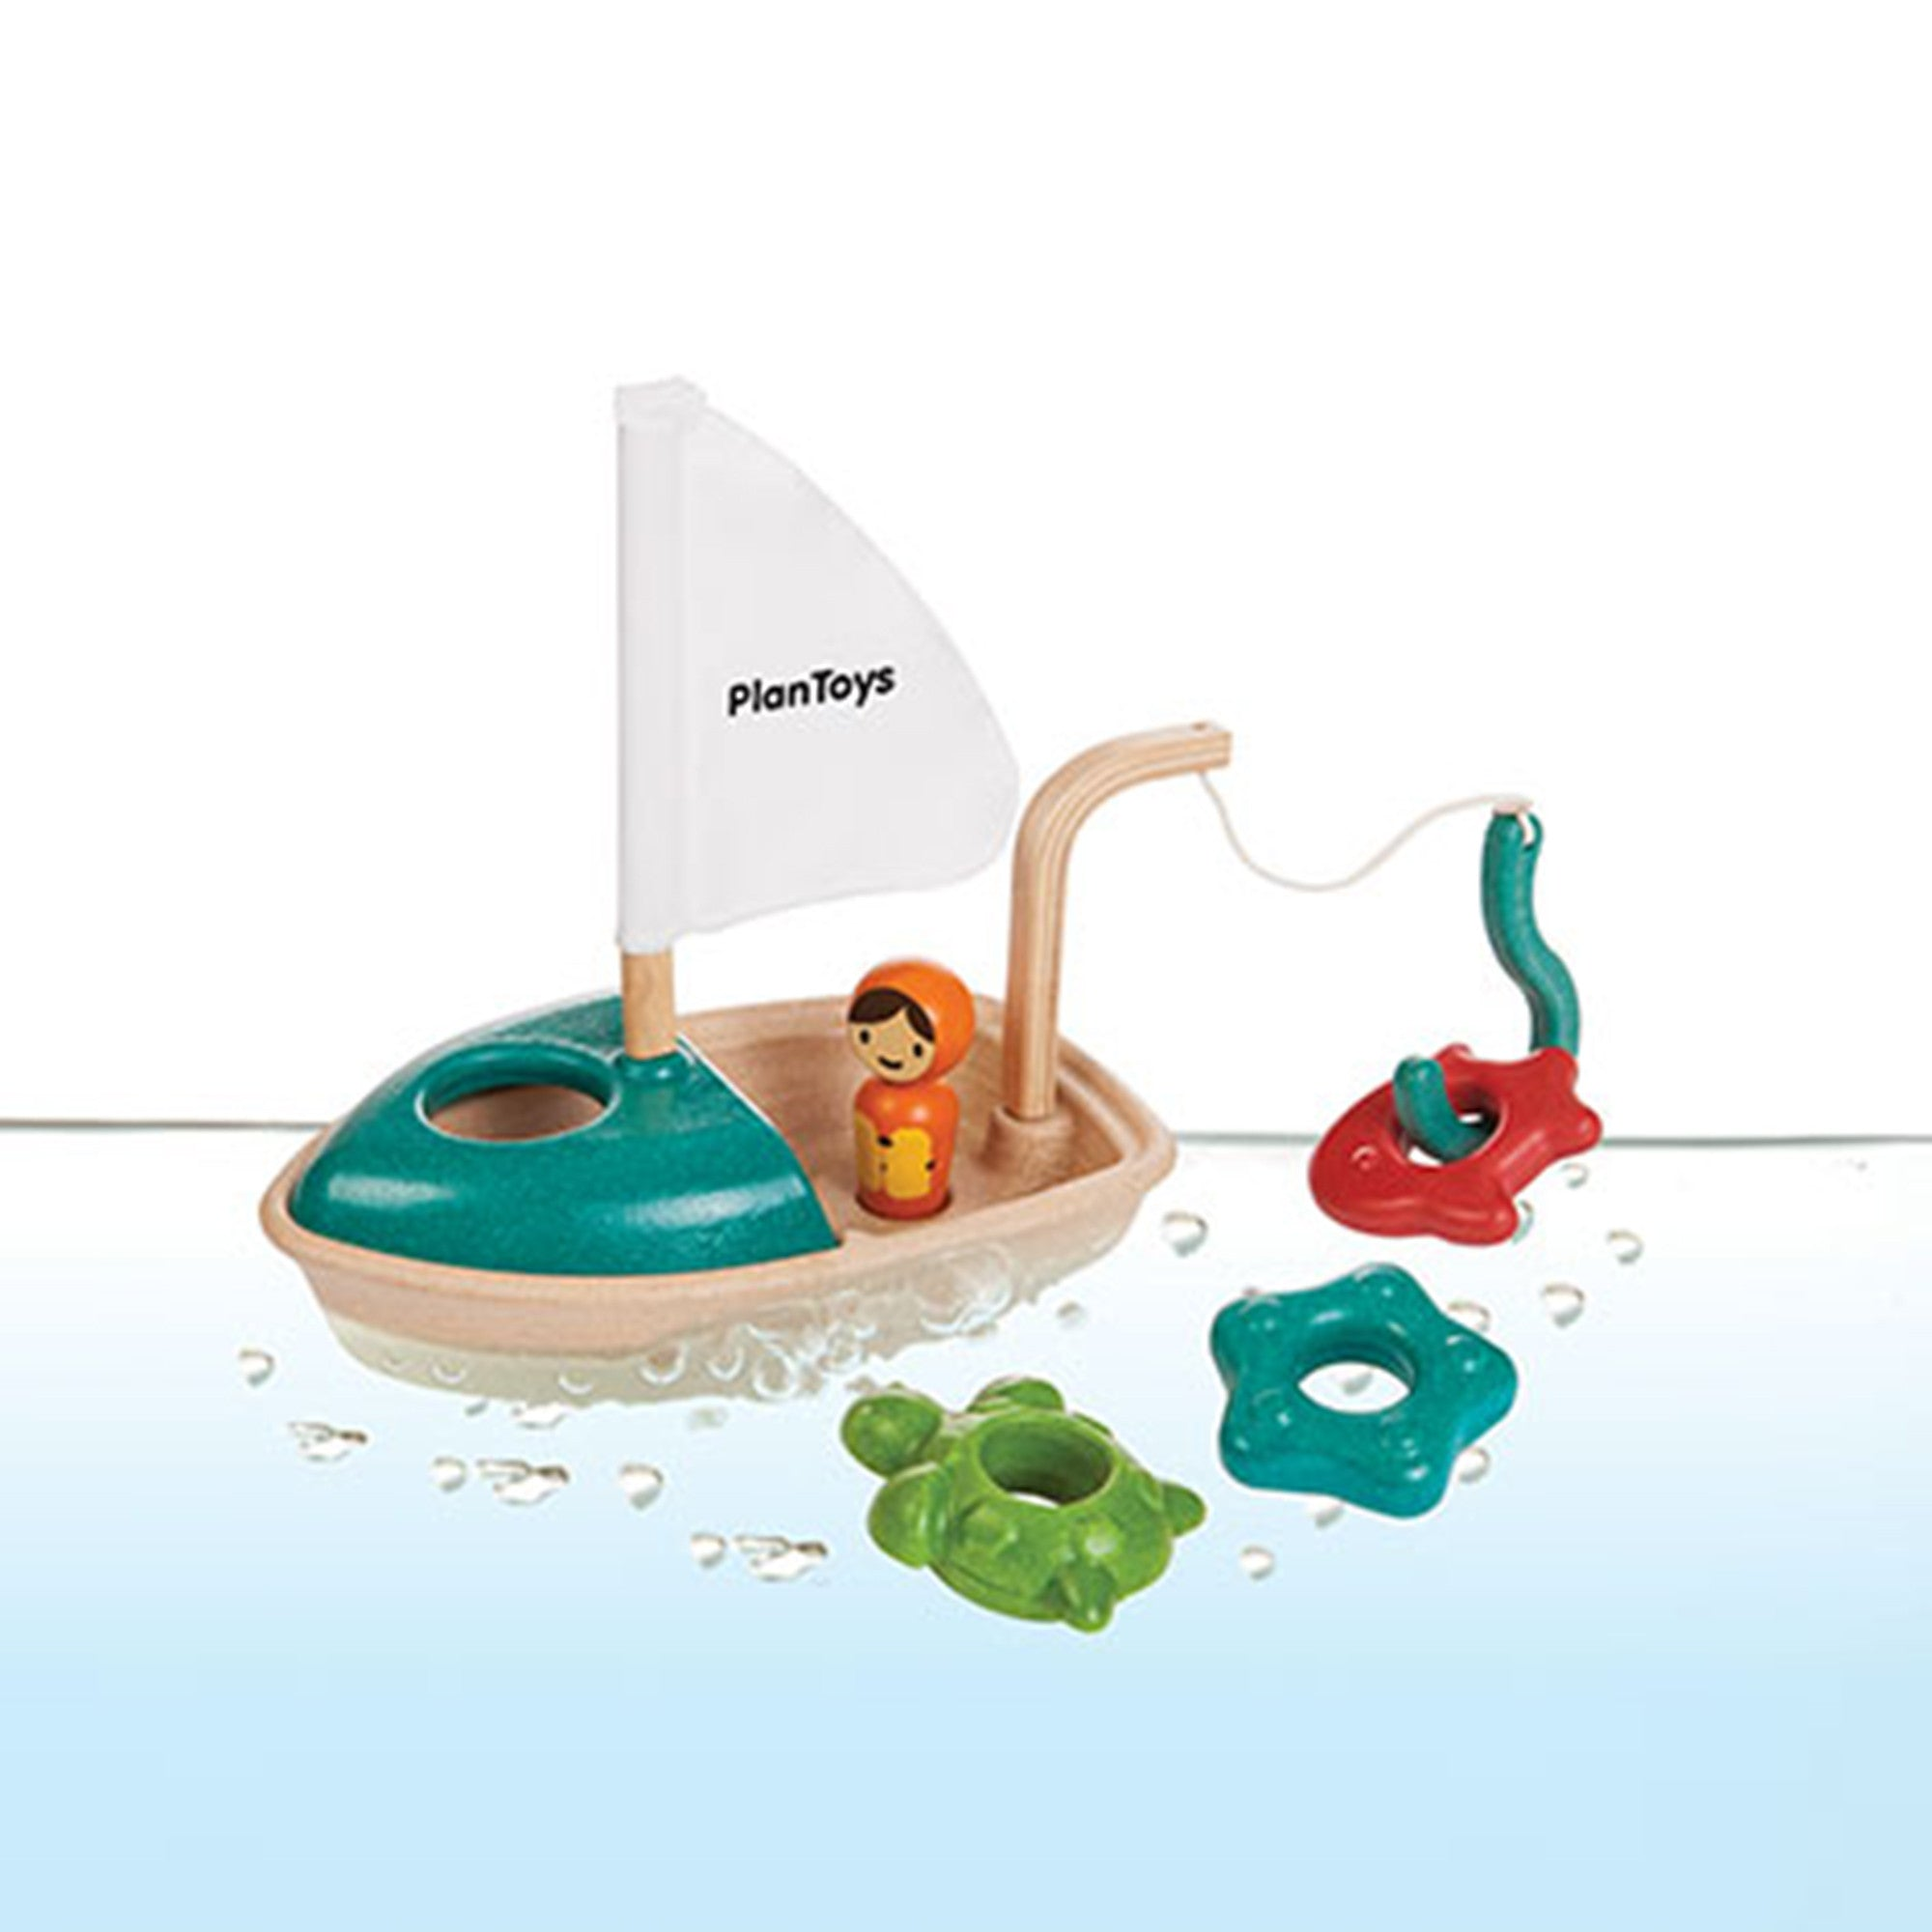 Plan Toys Activity Boat   - PlanToys - Little Earth Nest